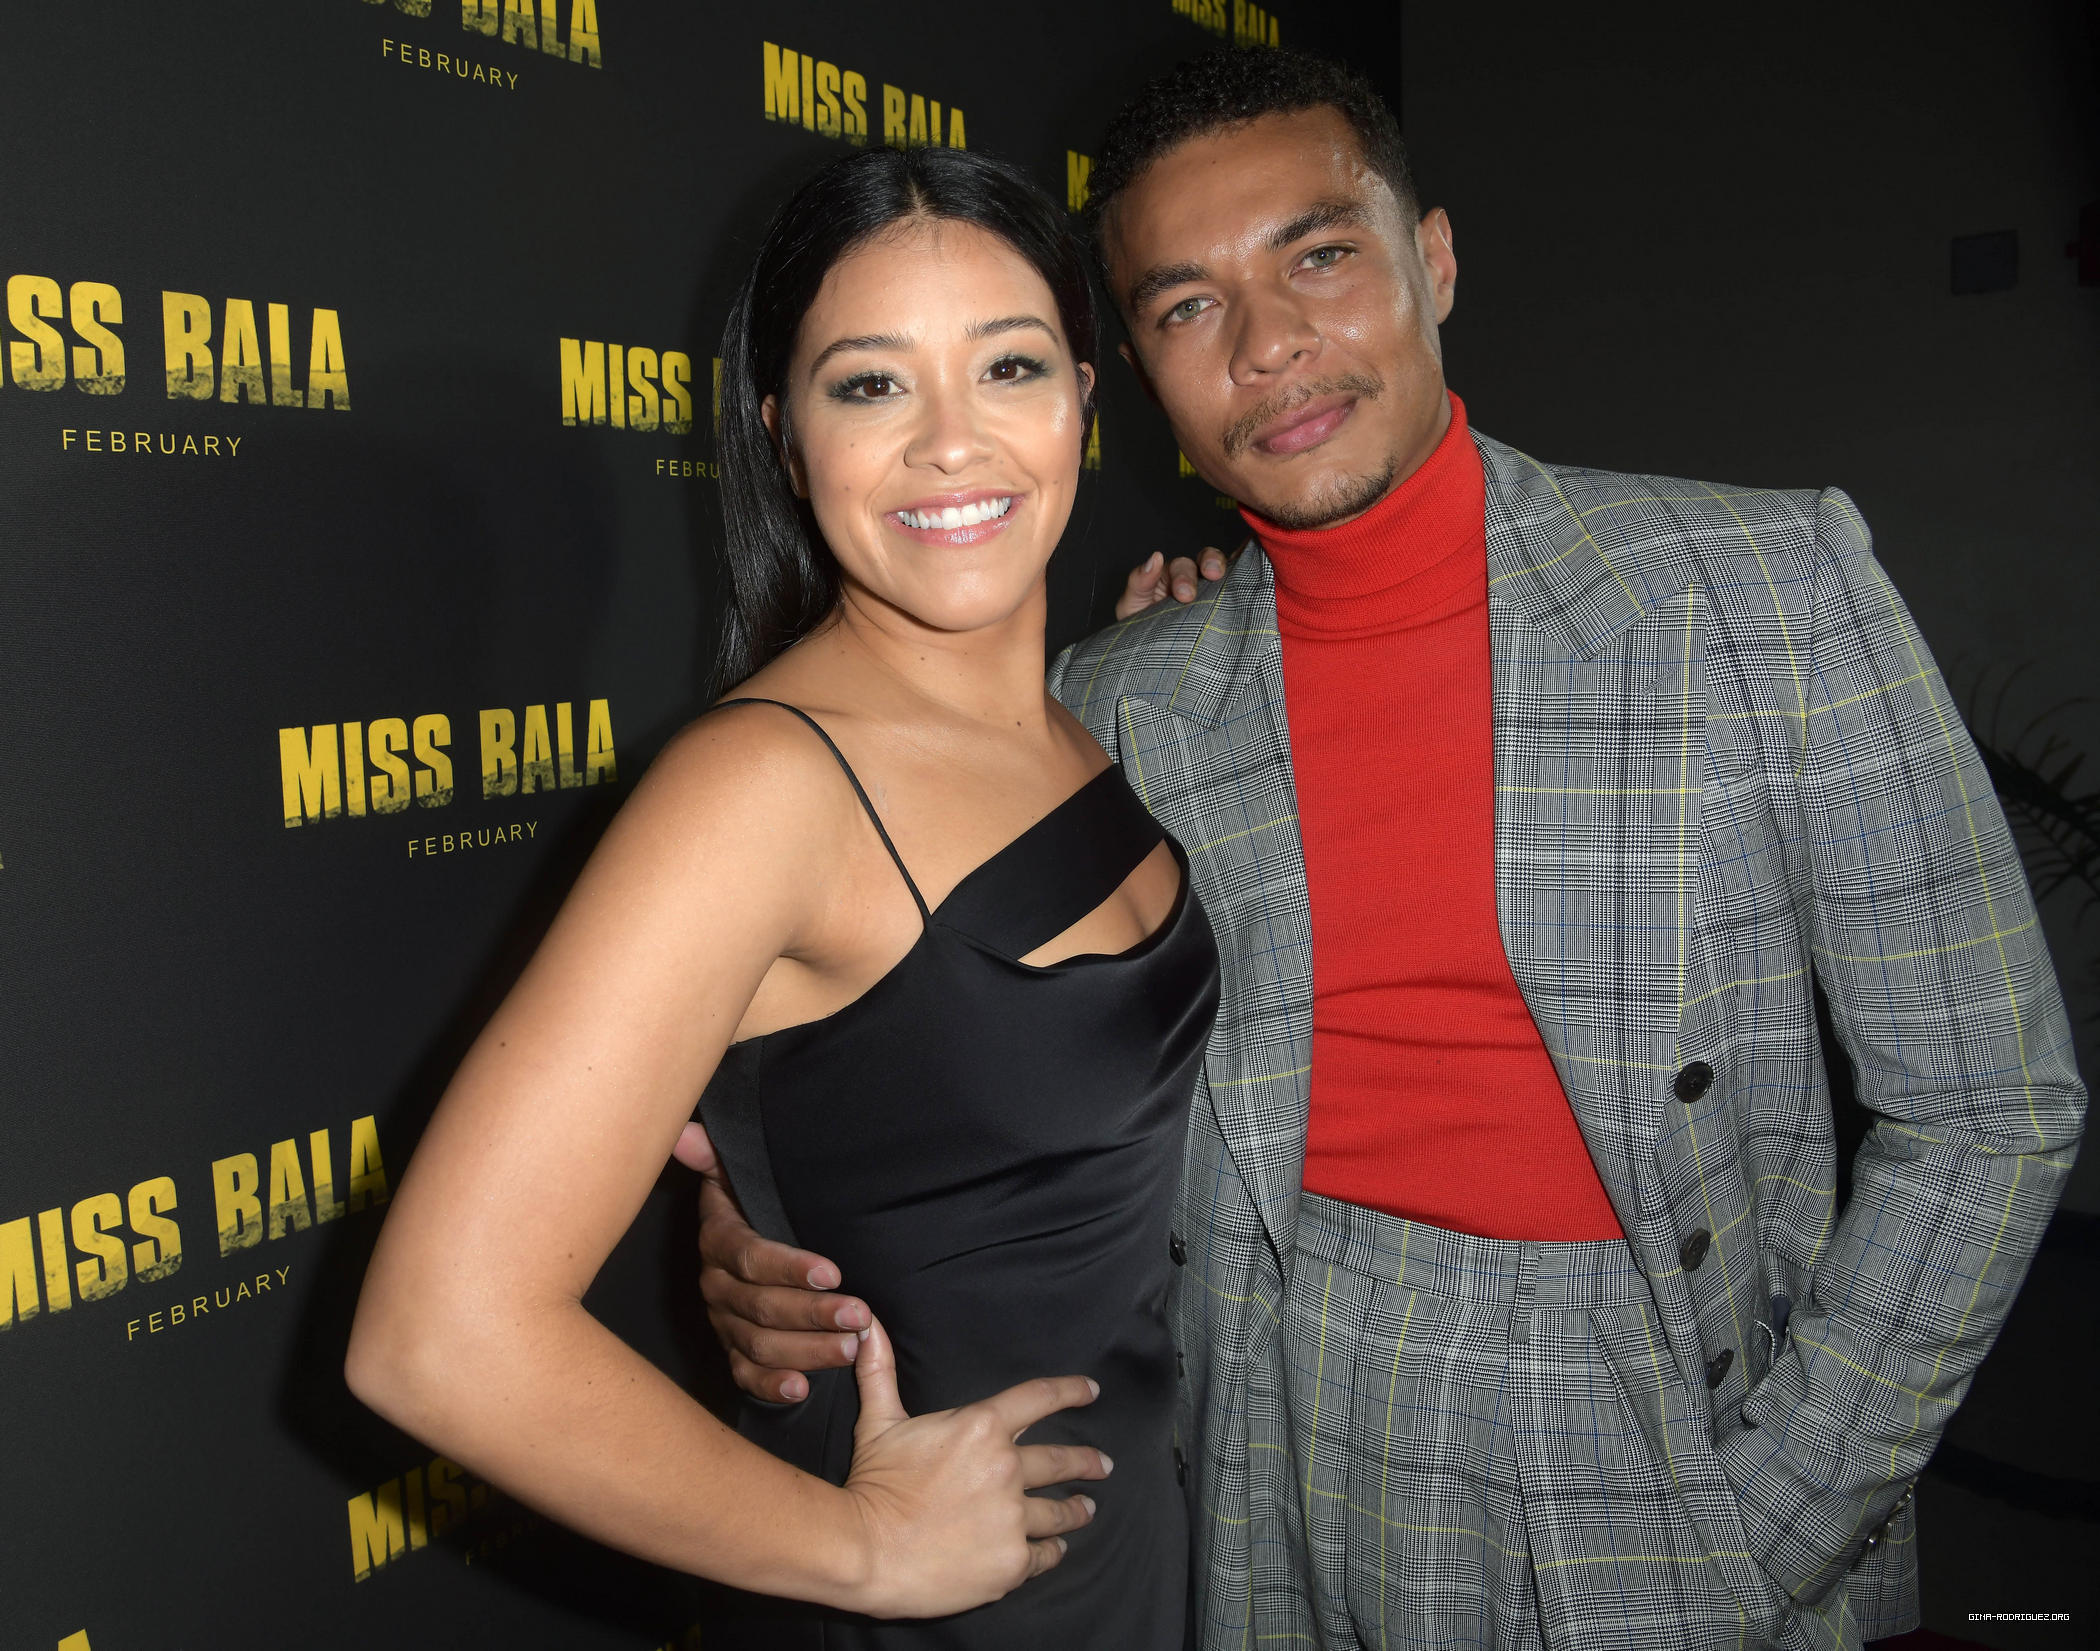 Photos: 'Miss Bala' Miami Screening